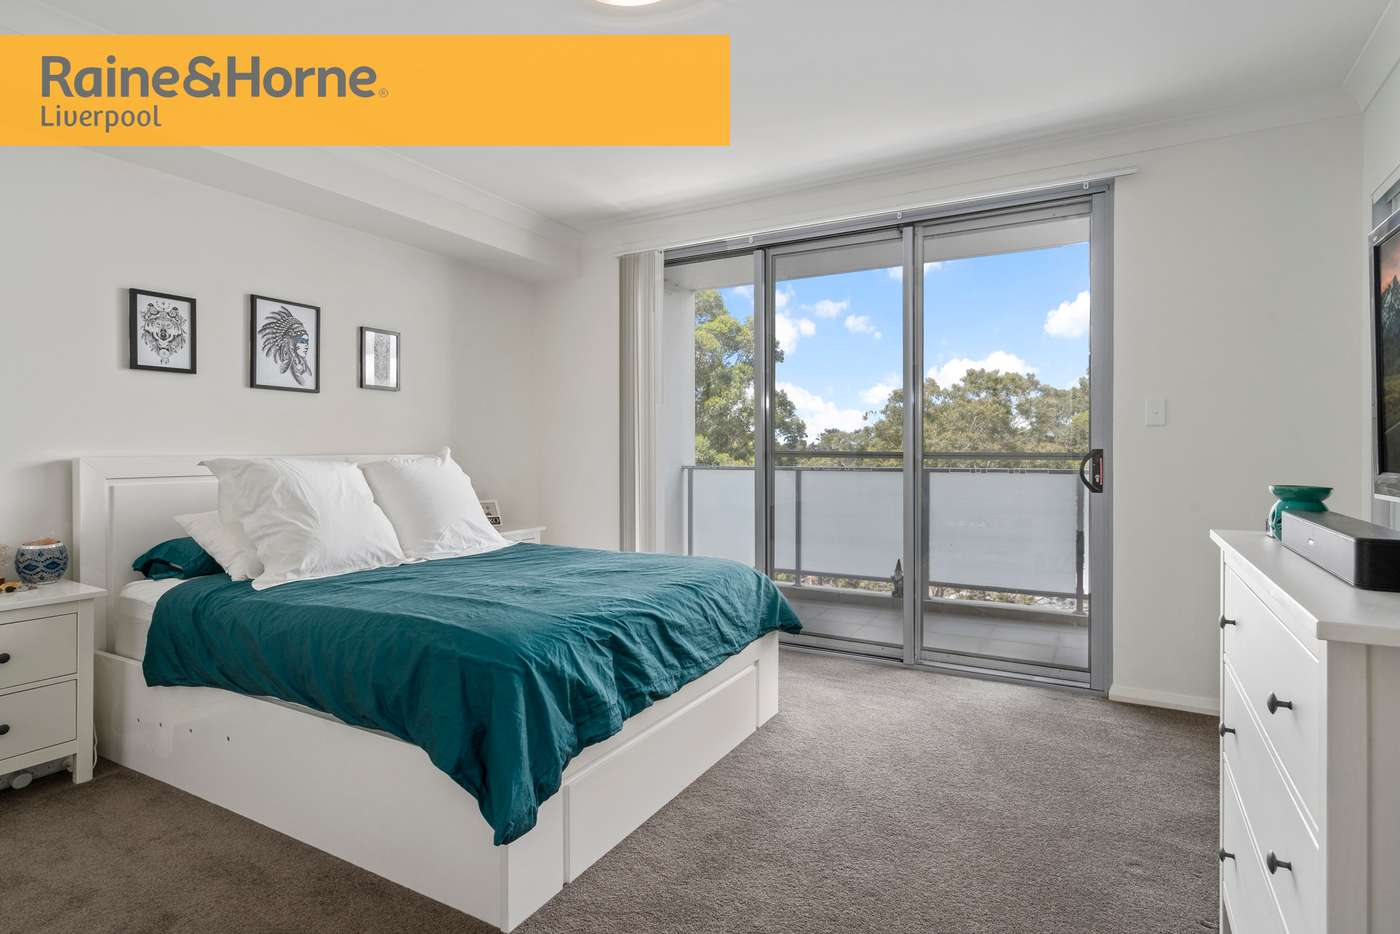 Fifth view of Homely apartment listing, 50/51 Bonnyrigg Avenue, Bonnyrigg NSW 2177